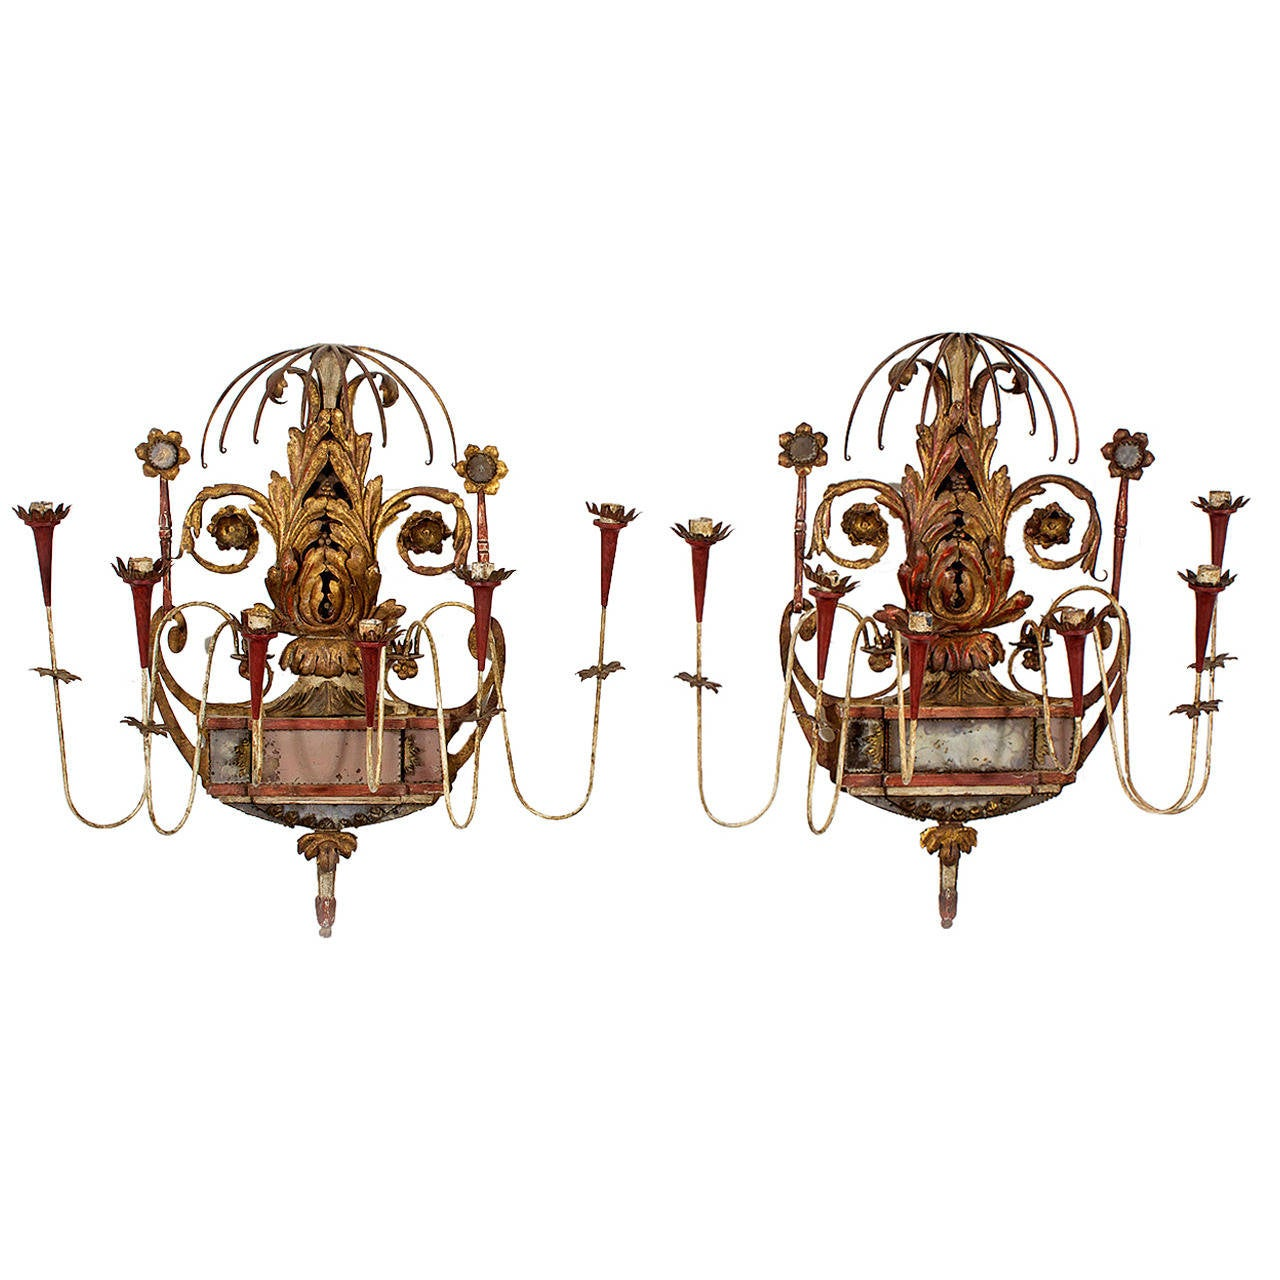 Pair of Neoclassical Style Painted Tole, Wood and Mirror Wall Sconces